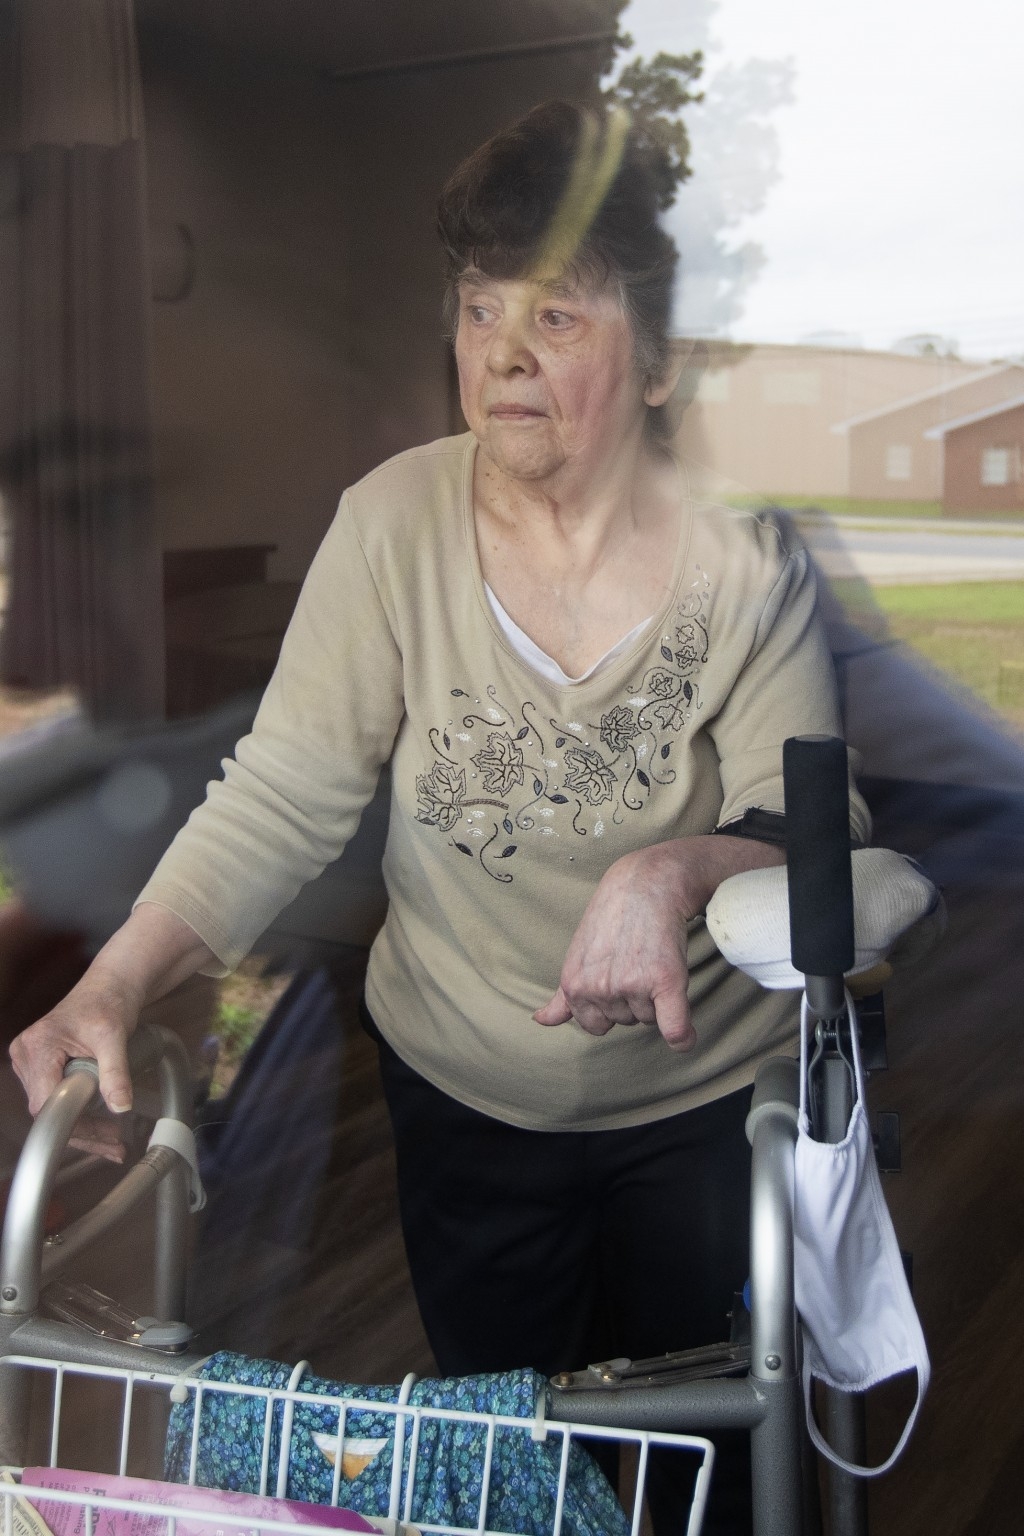 Southern Pines nursing home resident Judy Morey is seen through the window of her room during an interview in Warner Robins, Ga., on Thursday, June 25...